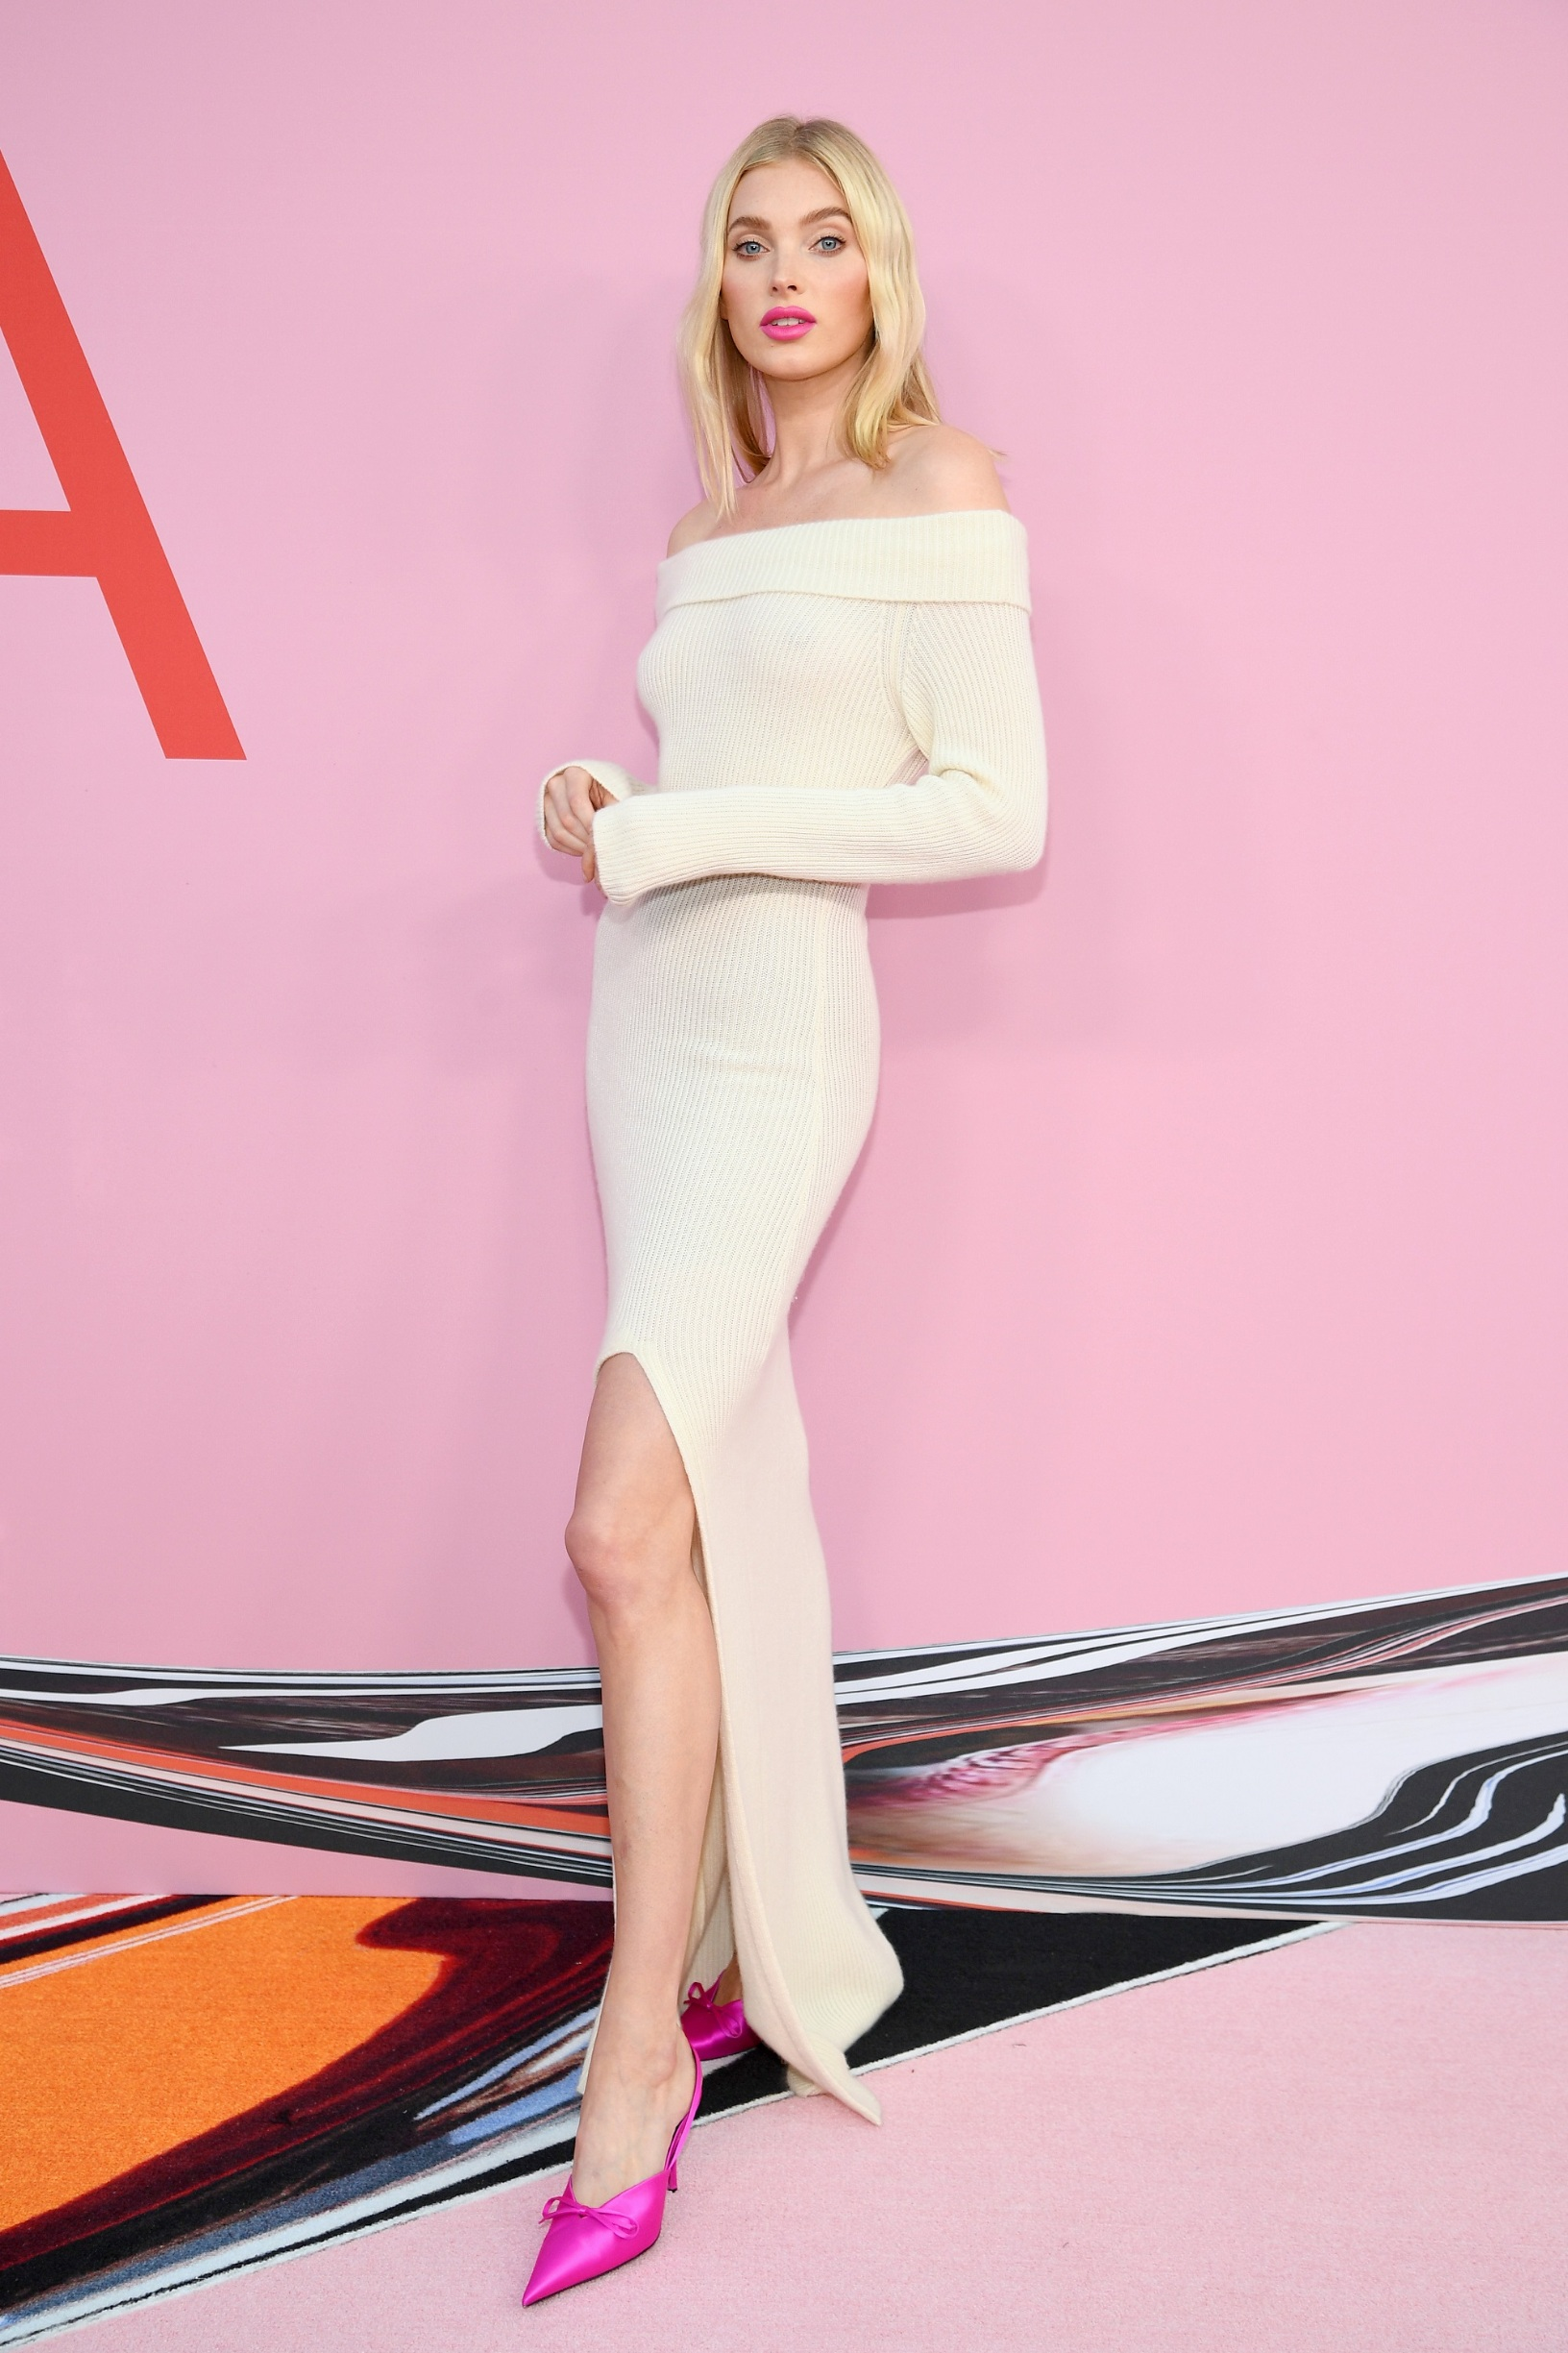 NEW YORK, NEW YORK - JUNE 03: Elsa Hosk attends the CFDA Fashion Awards at the Brooklyn Museum of Art on June 03, 2019 in New York City. (Photo by Dimitrios Kambouris/Getty Images)